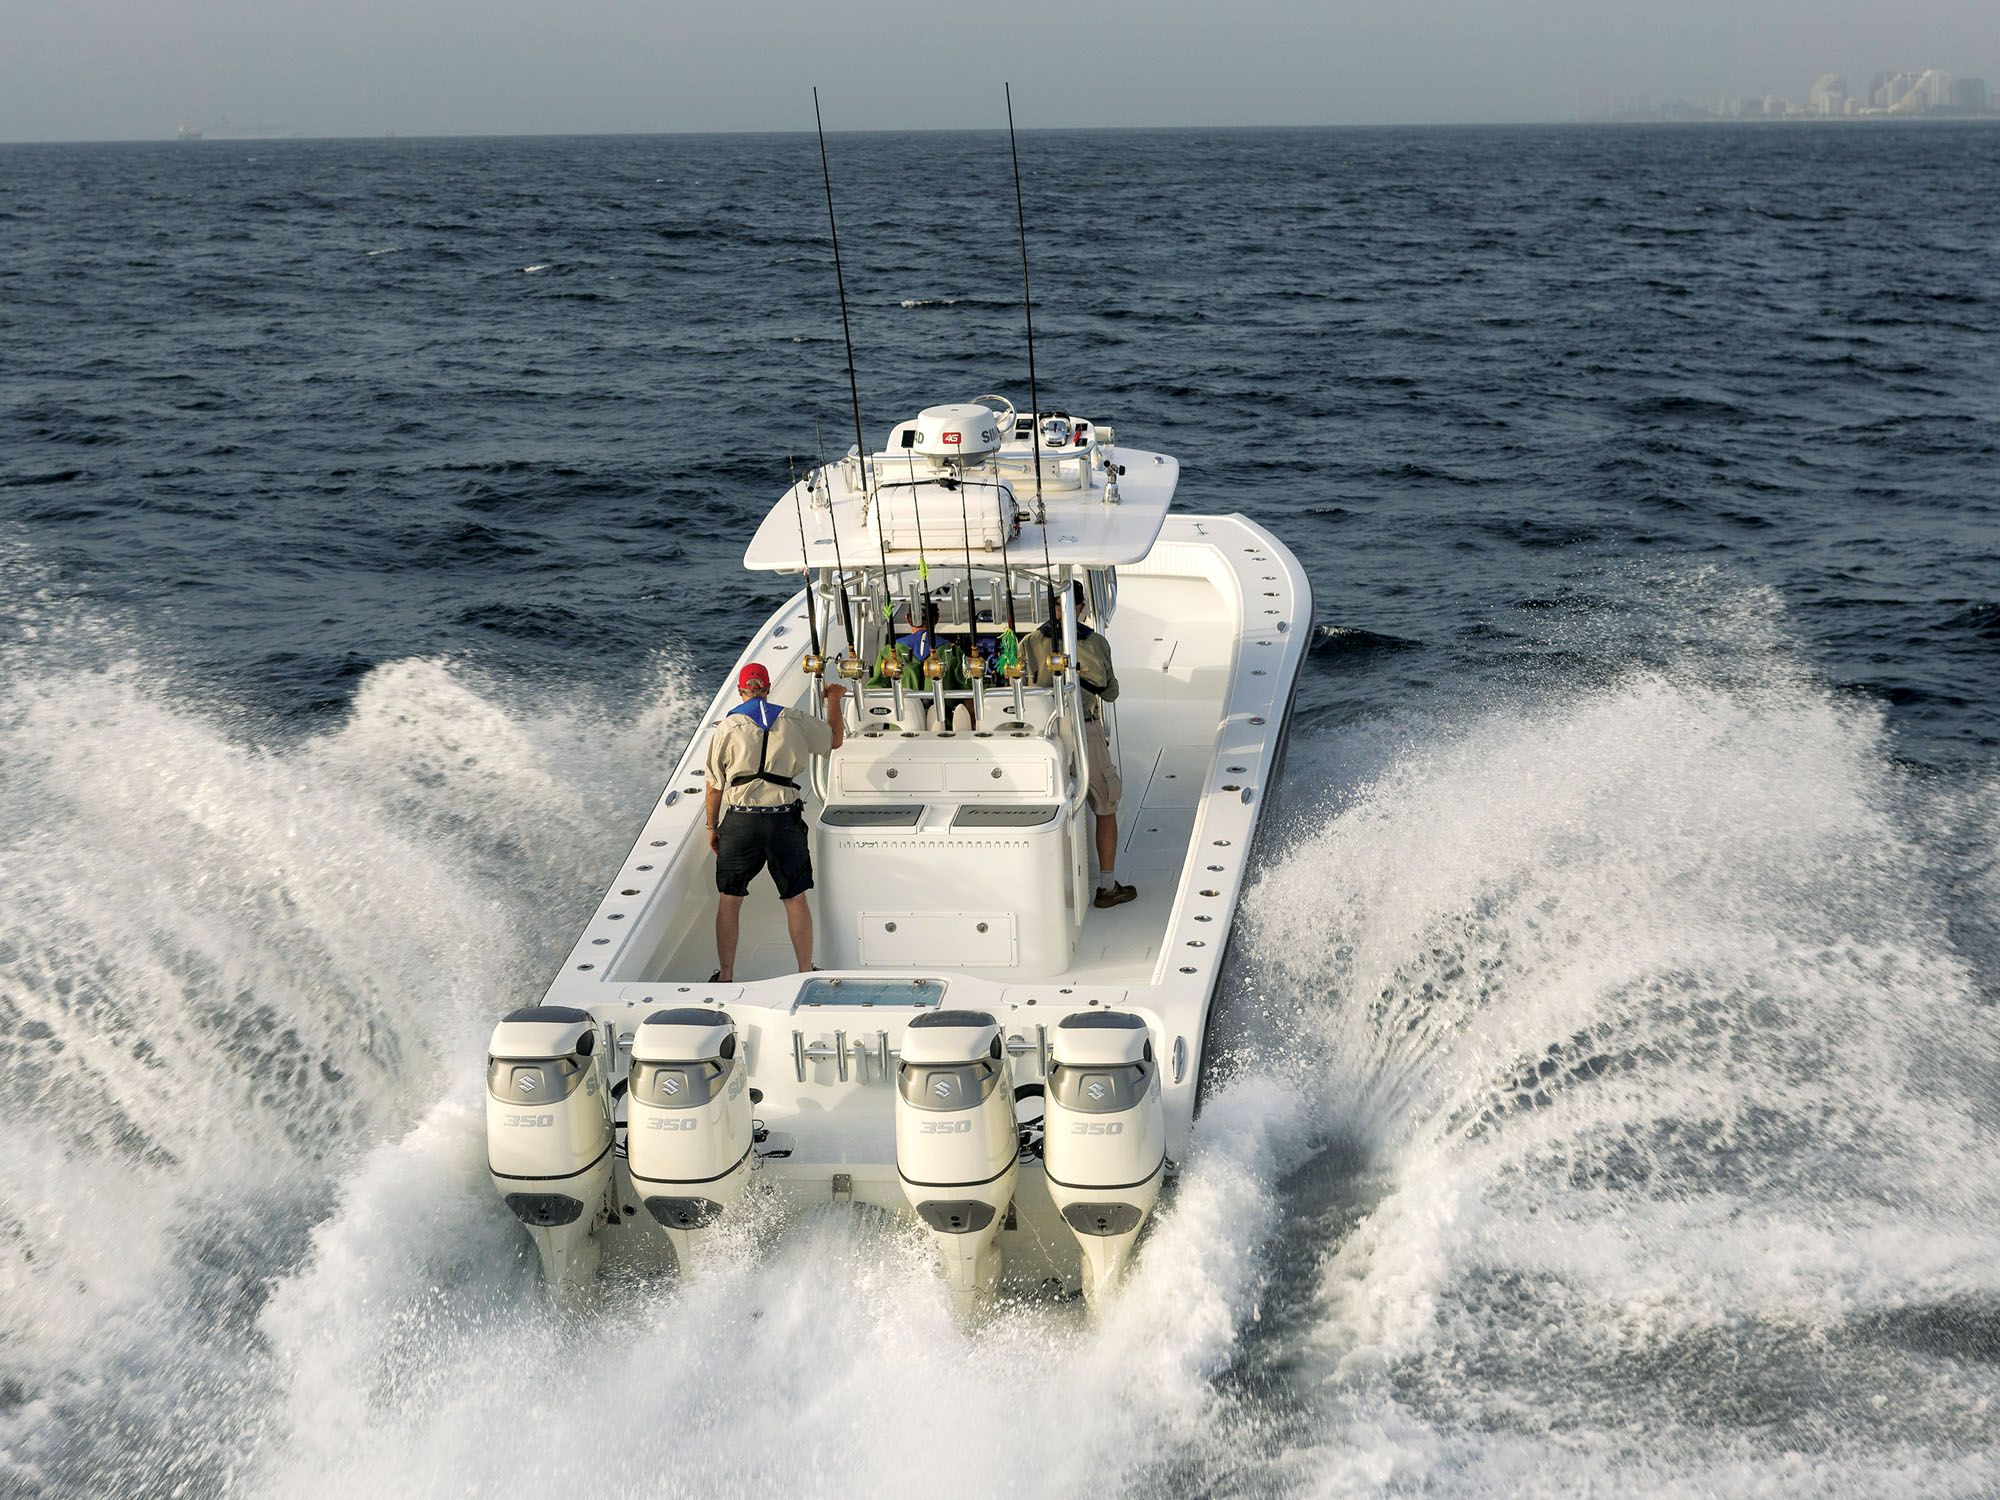 New Outboard Engines Spur the Rise of Single-System Boats